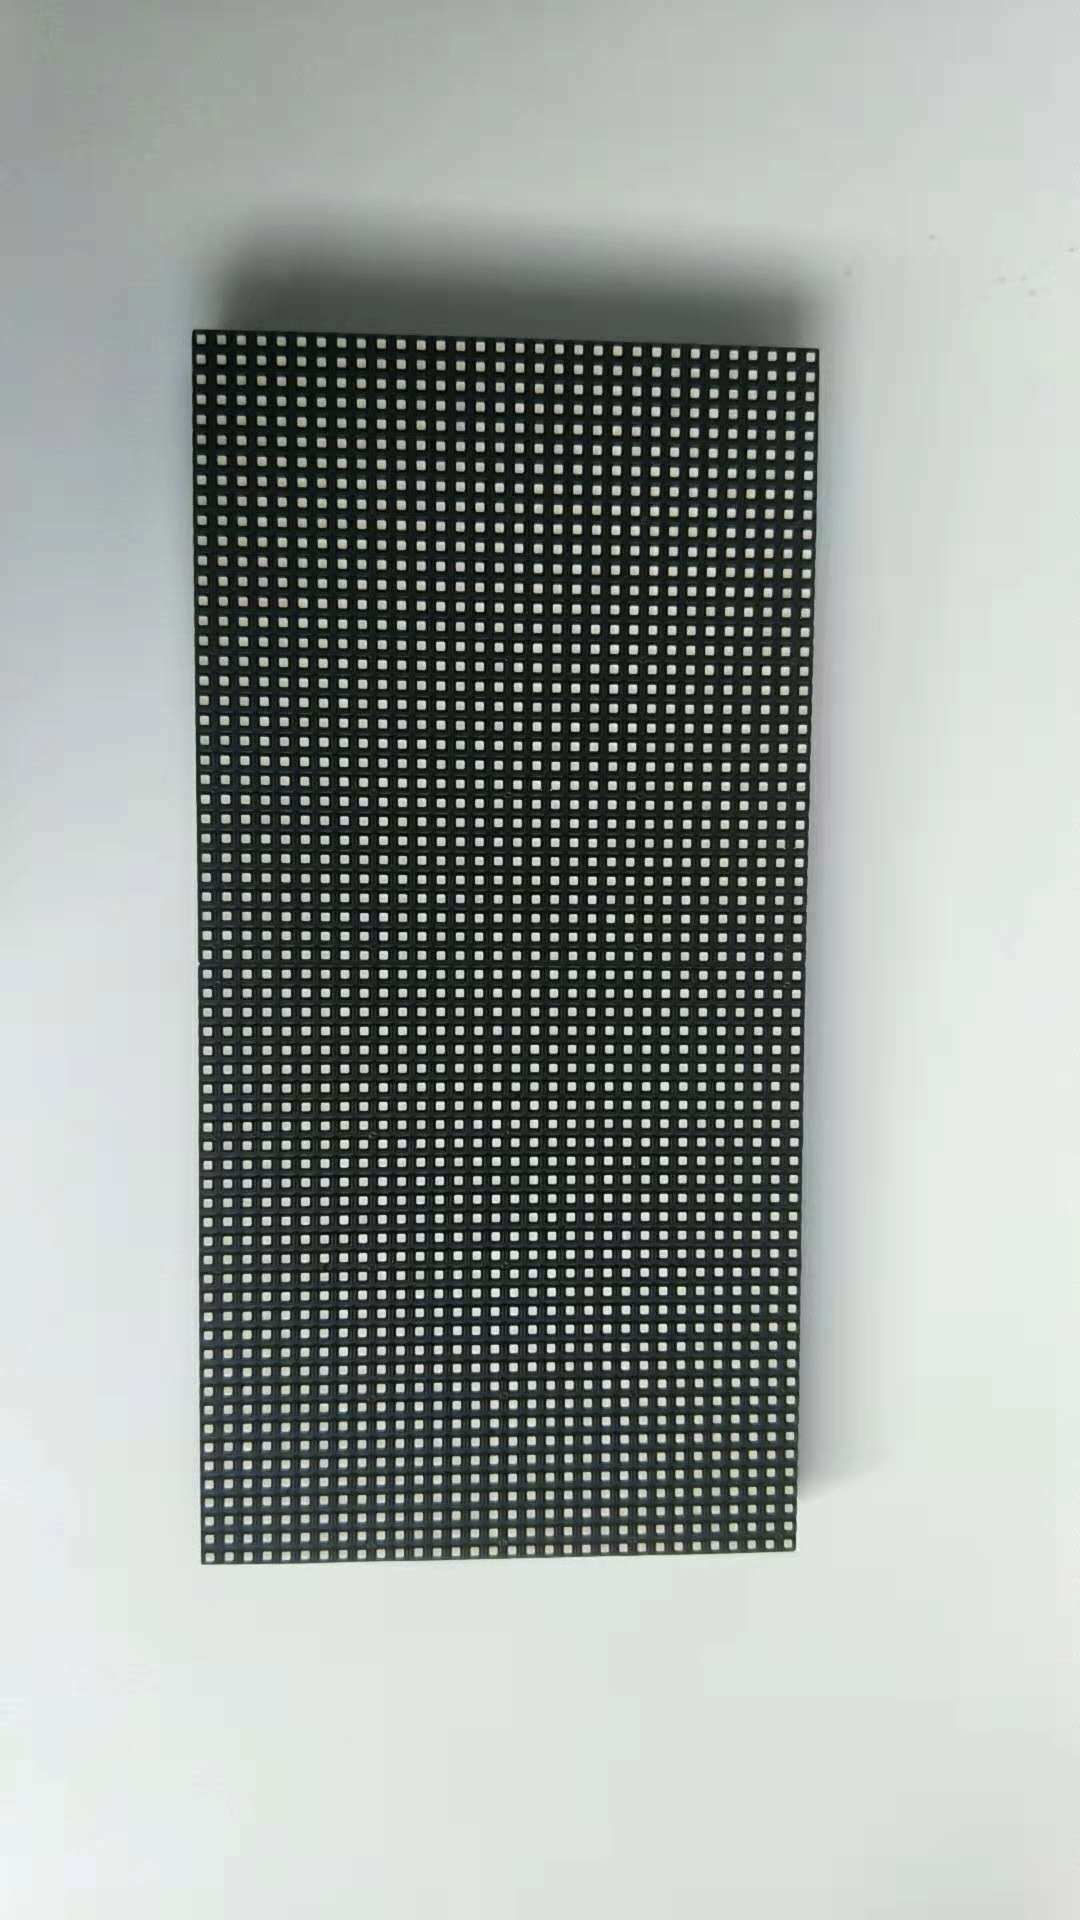 Outdoor 320x160 SMD RGB Led Display Module P4